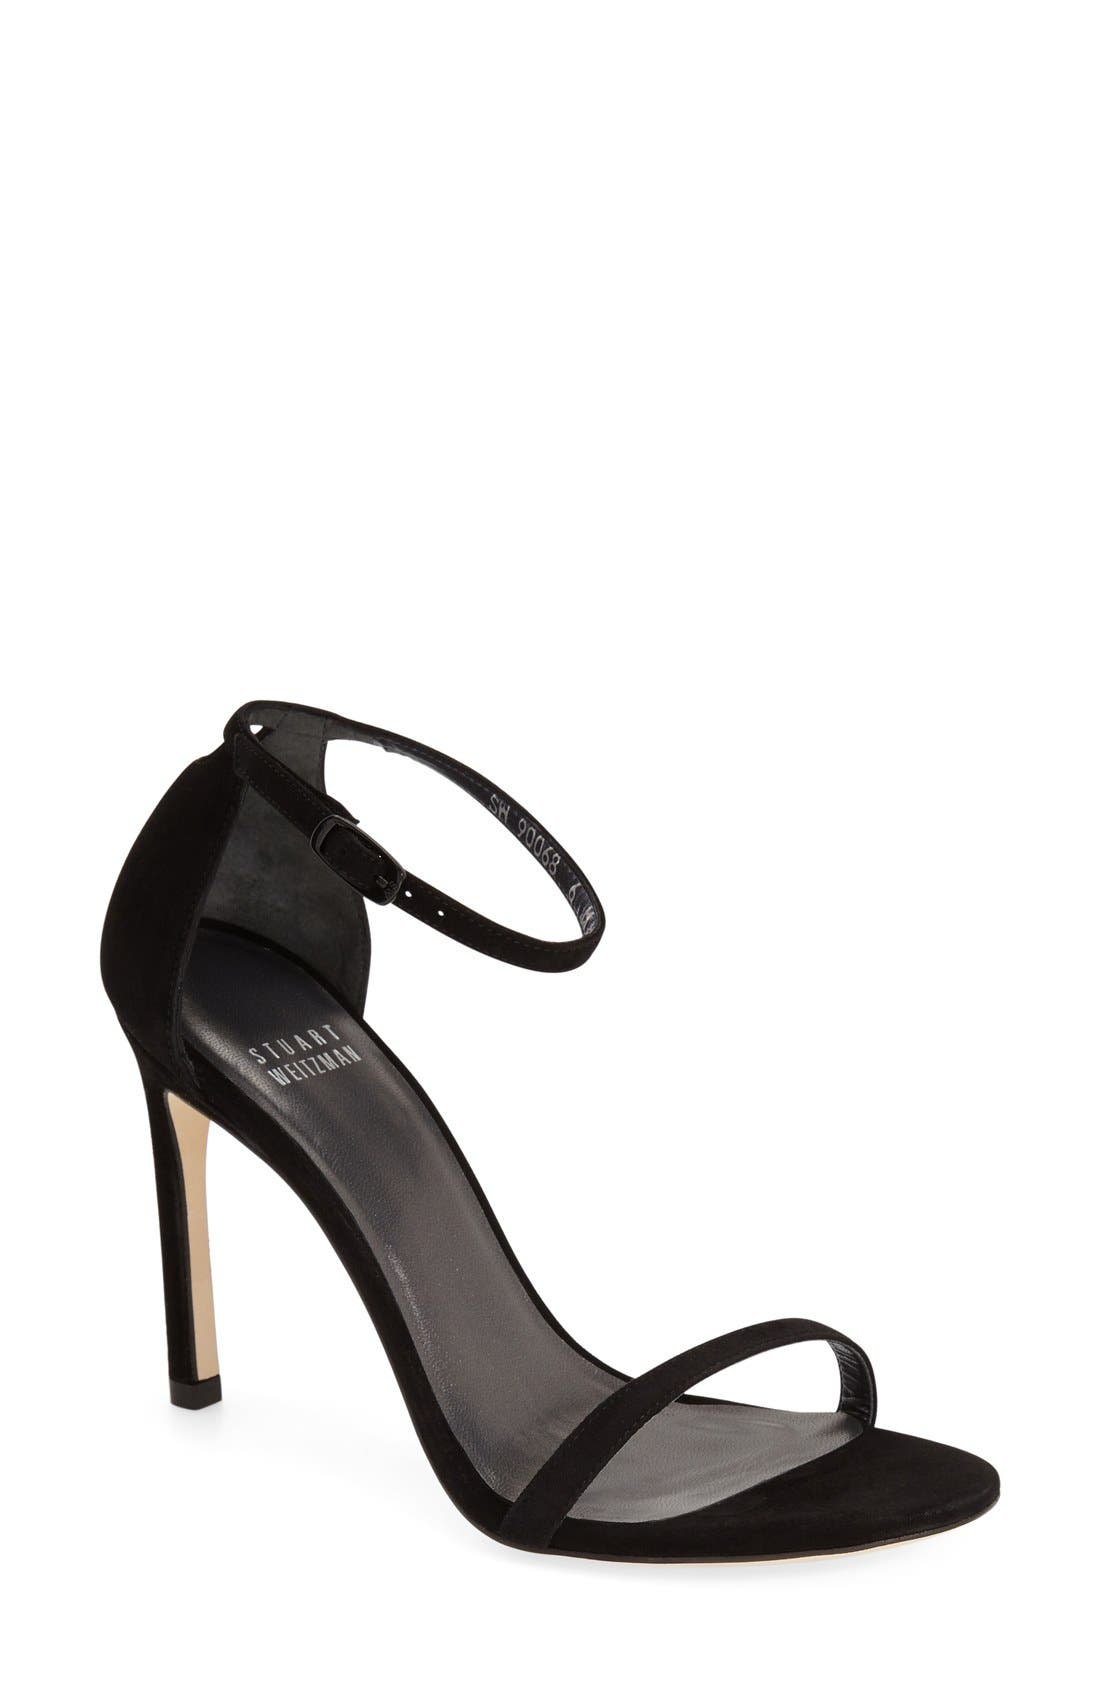 Nudistsong Ankle Strap Sandal,                             Main thumbnail 12, color,